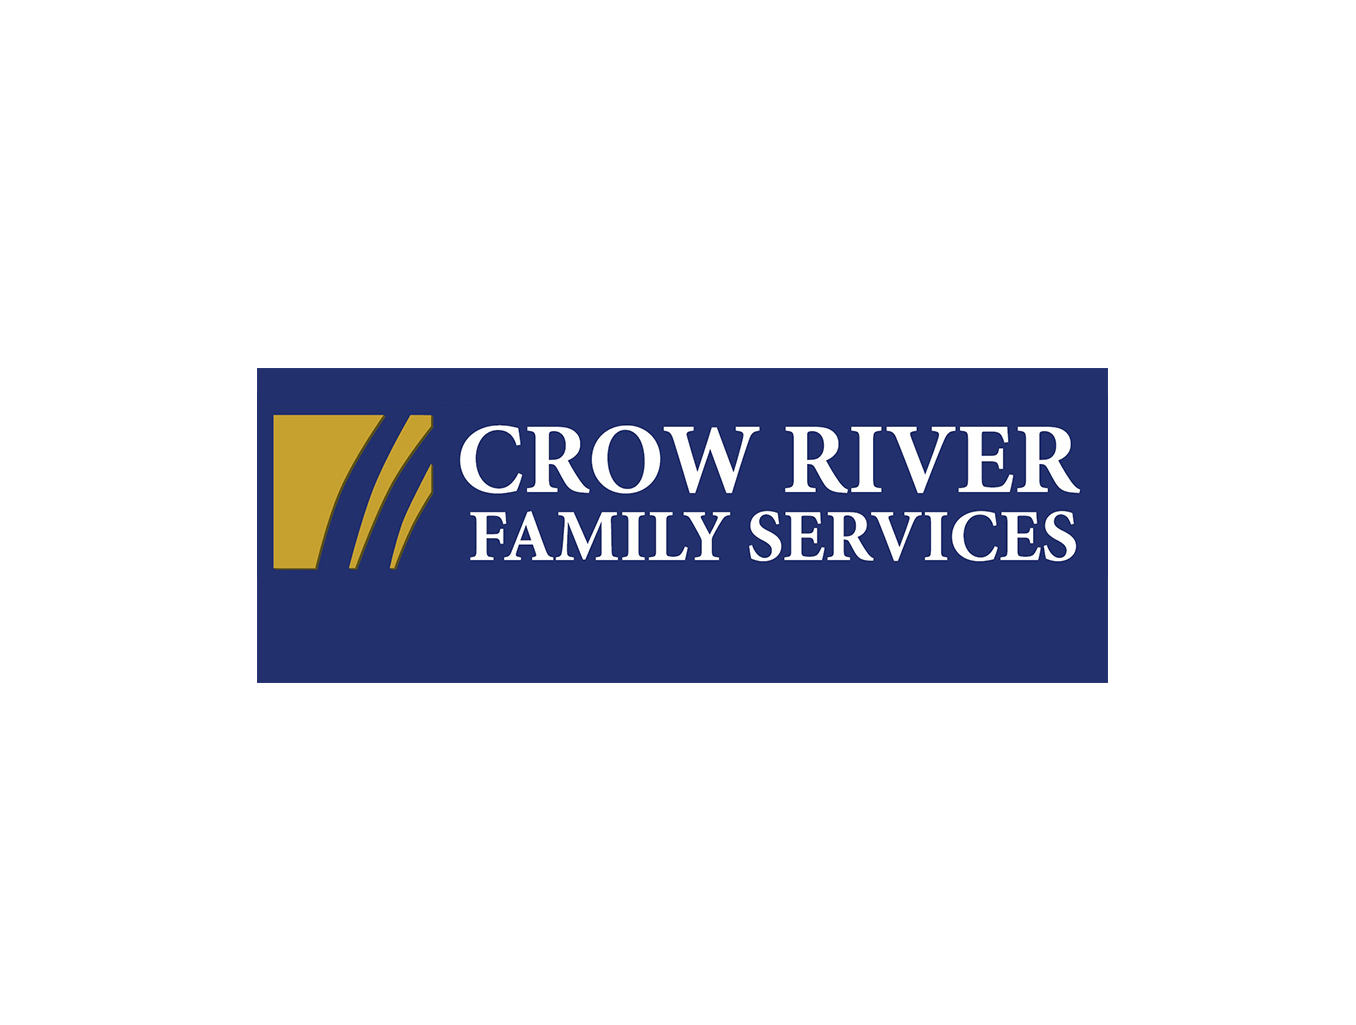 Crow River Family Services